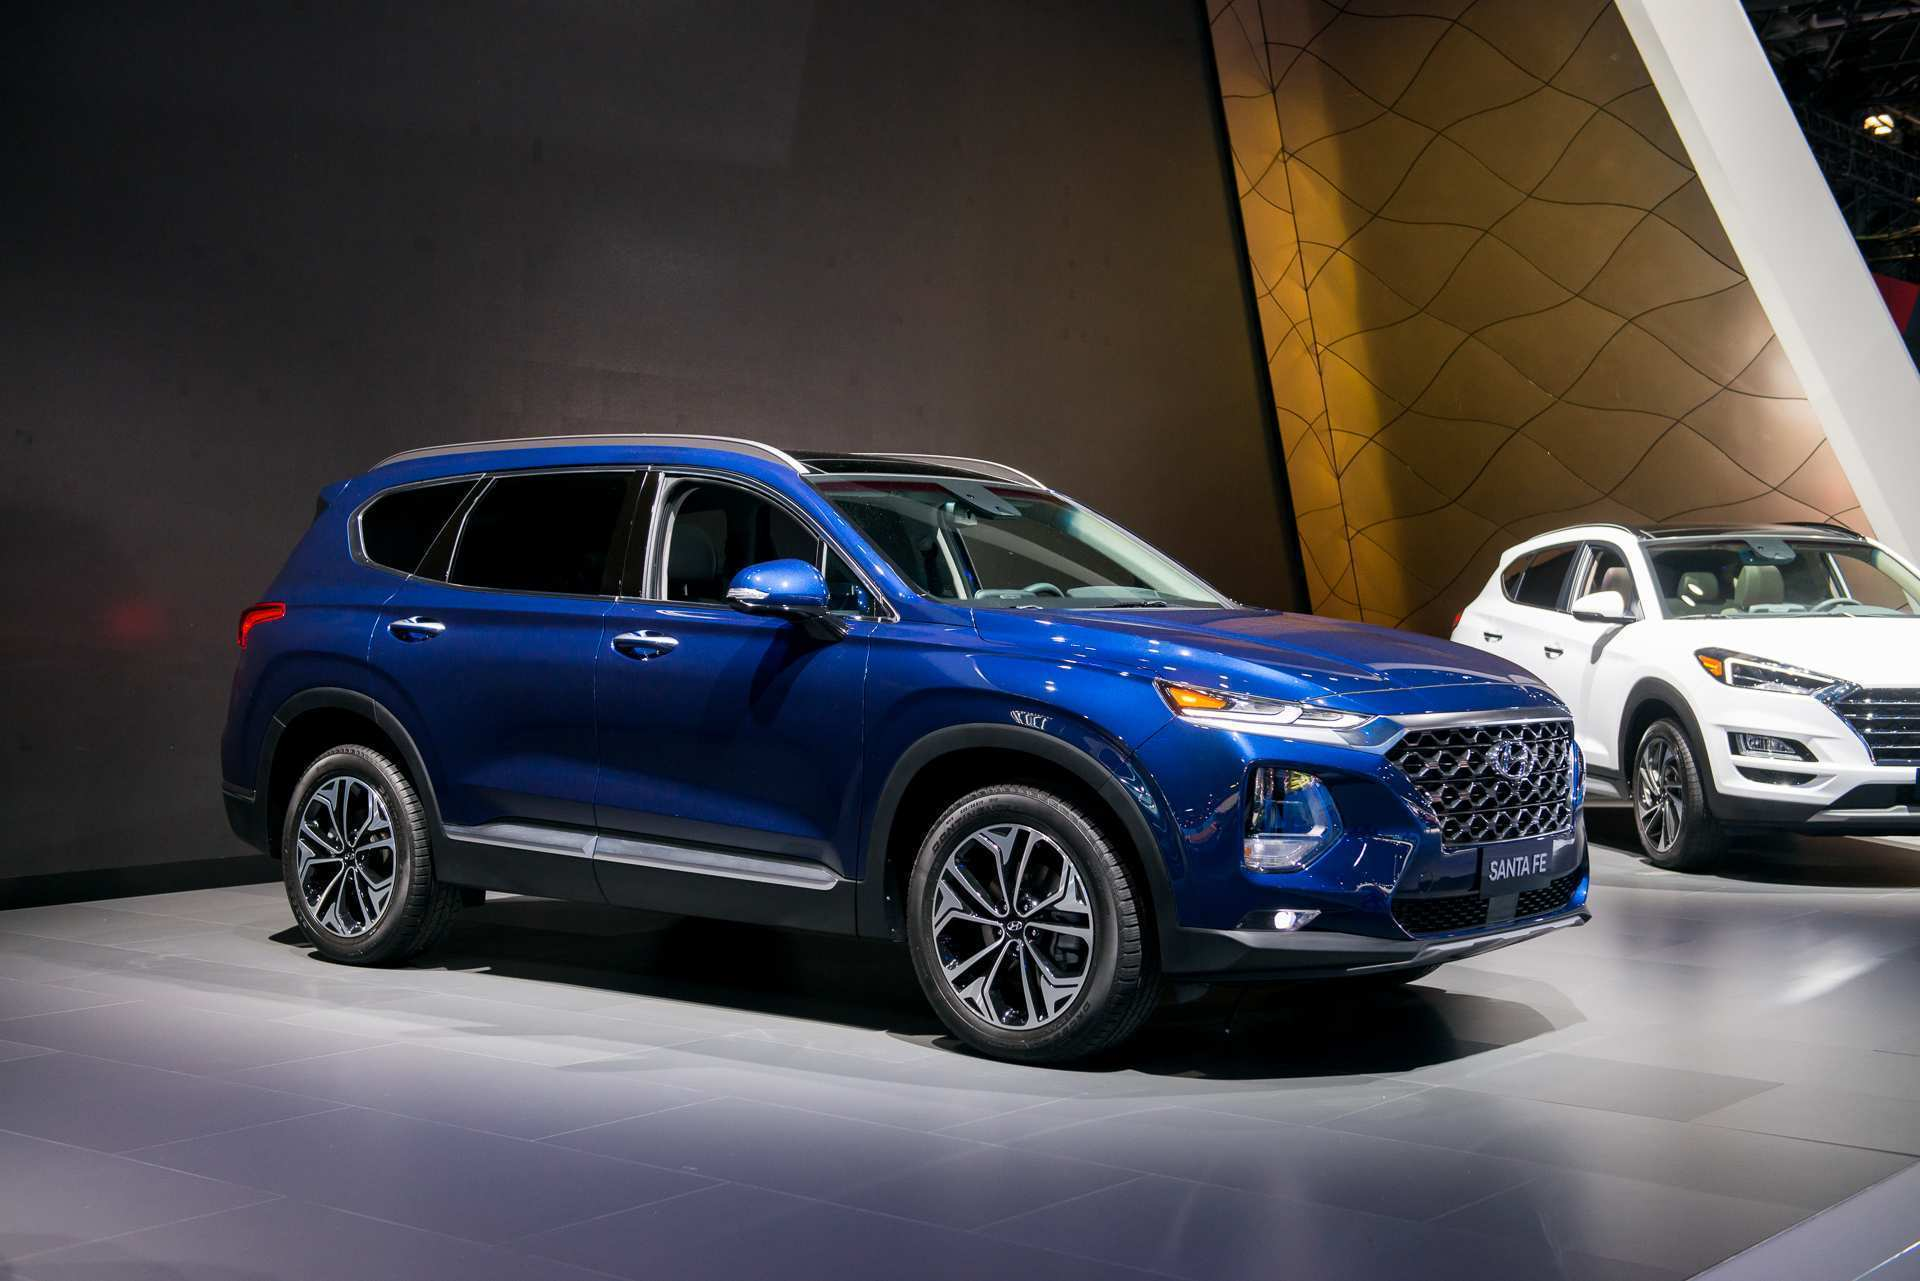 73 Gallery of 2019 Hyundai Diesel Photos with 2019 Hyundai Diesel